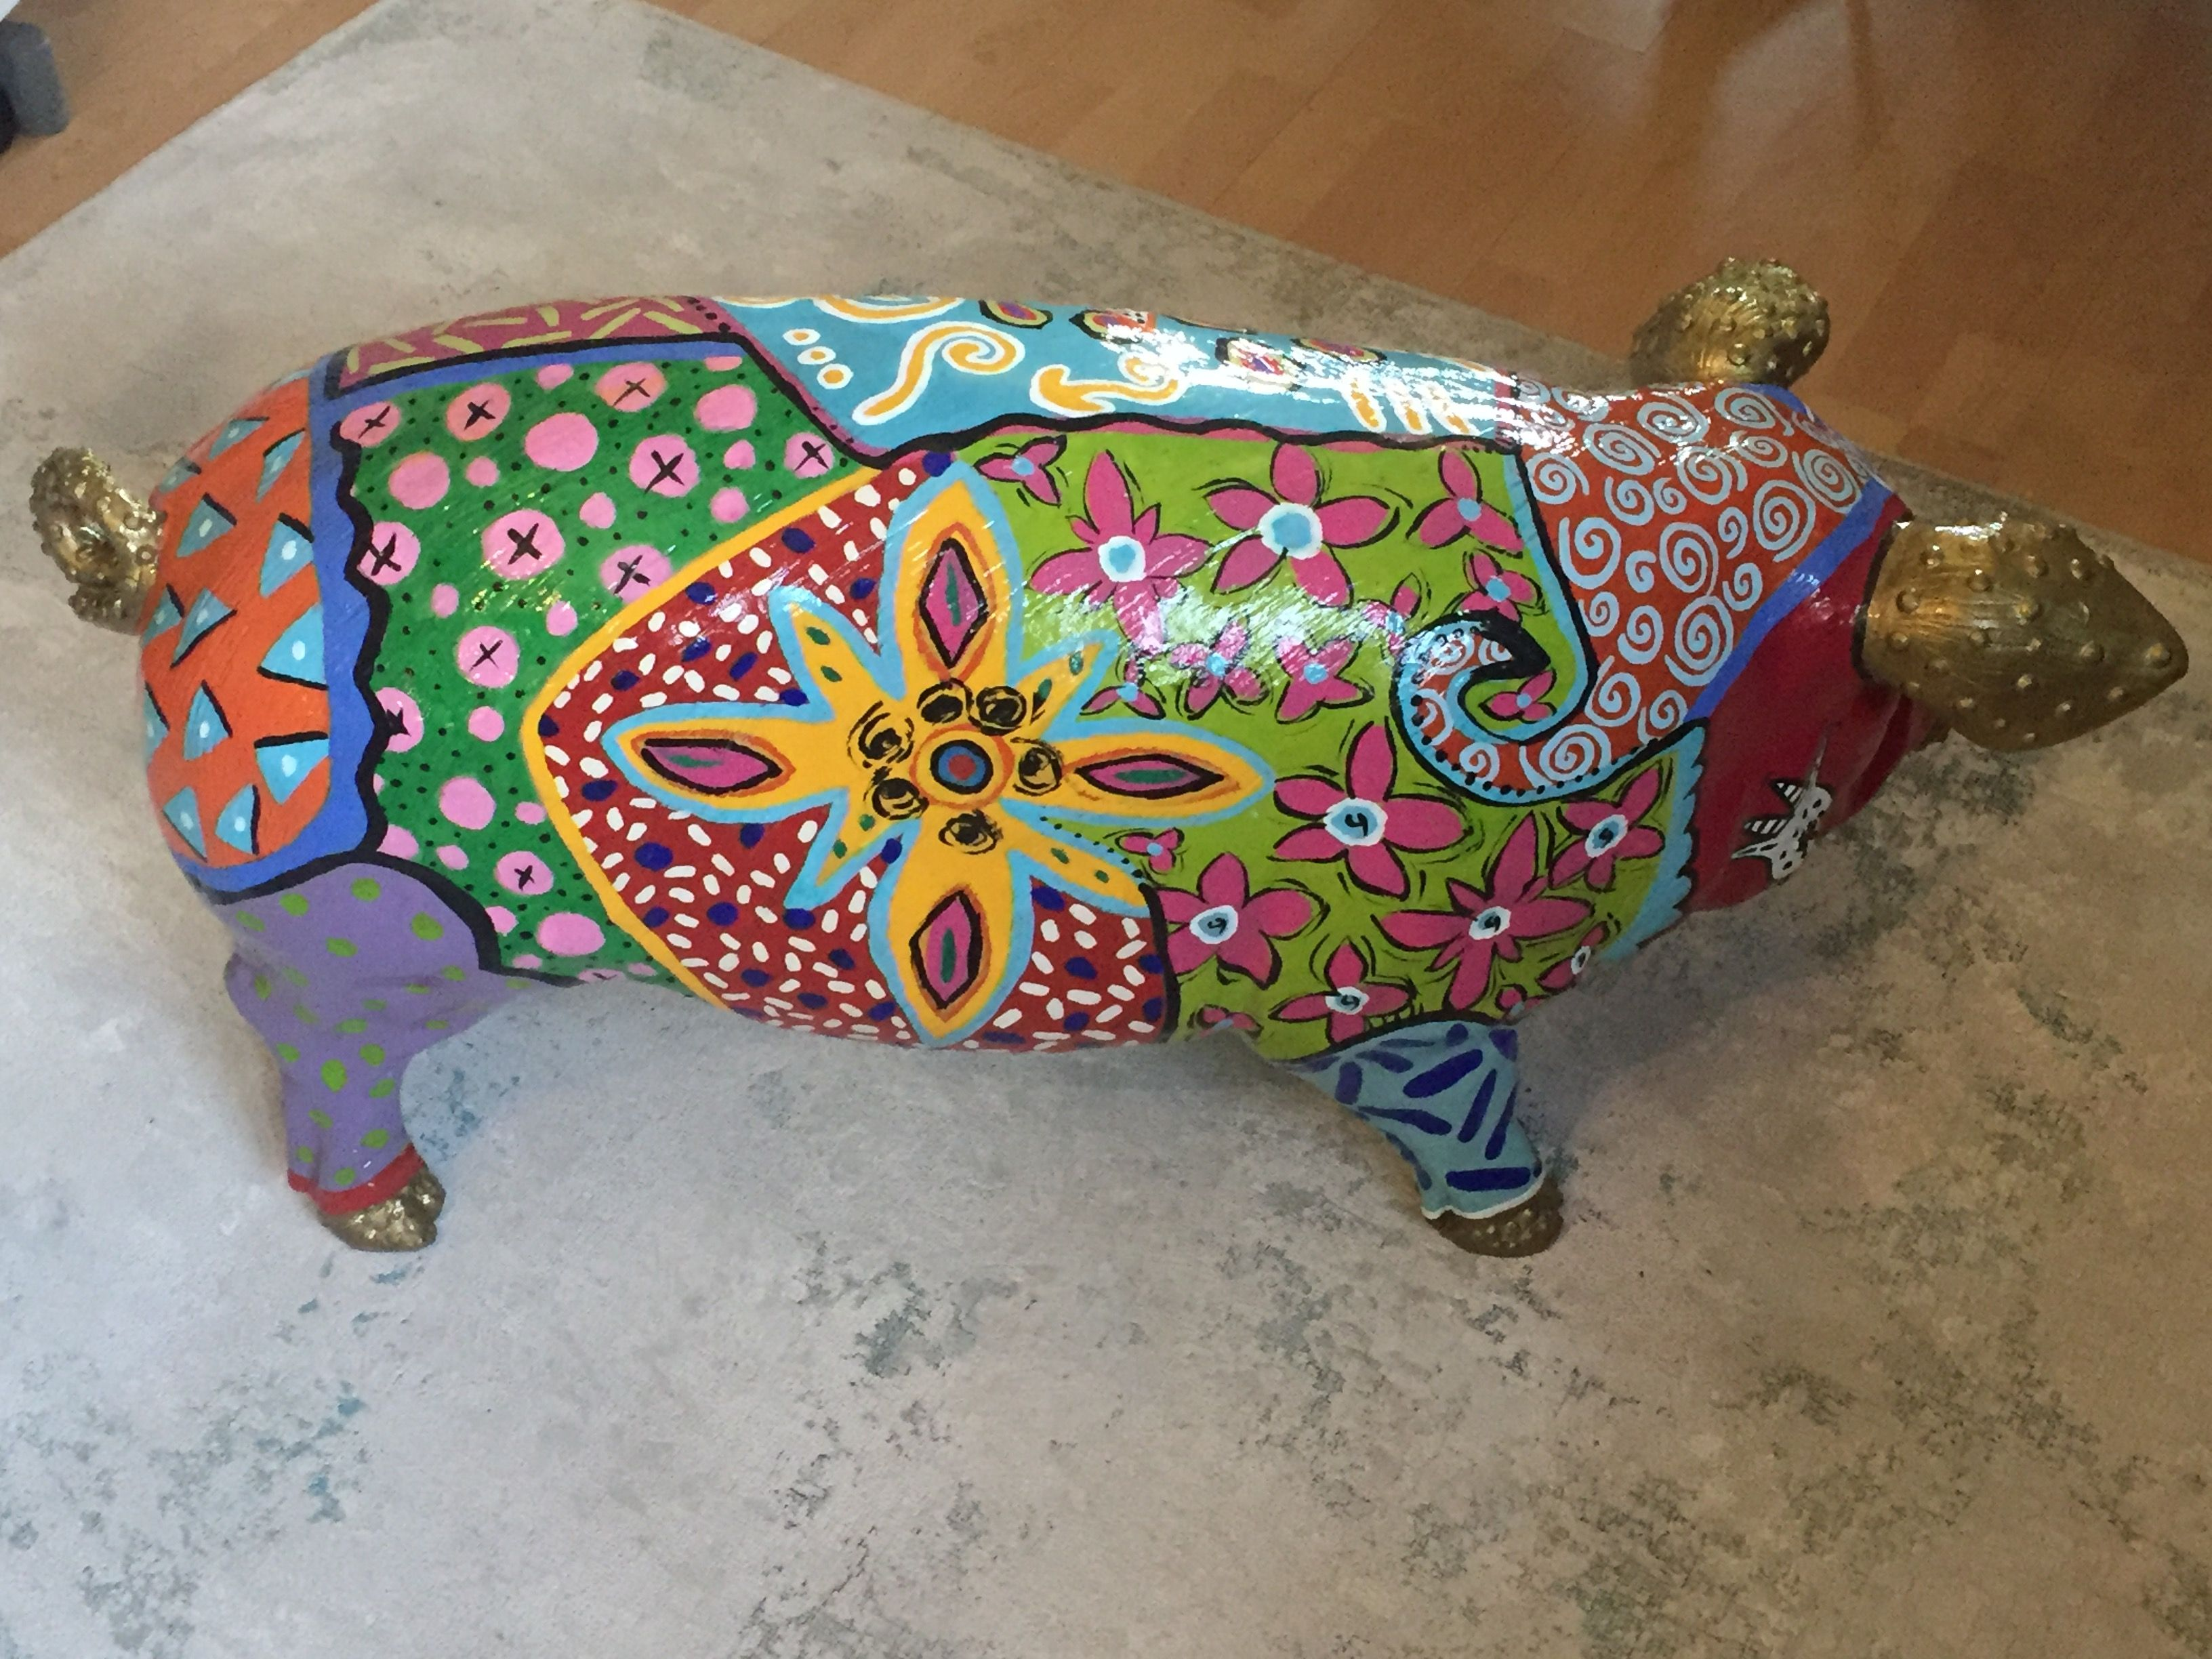 tierfigur schwein gro aus kunststoff bunt in pop art stil rechte seite betinakdesign. Black Bedroom Furniture Sets. Home Design Ideas